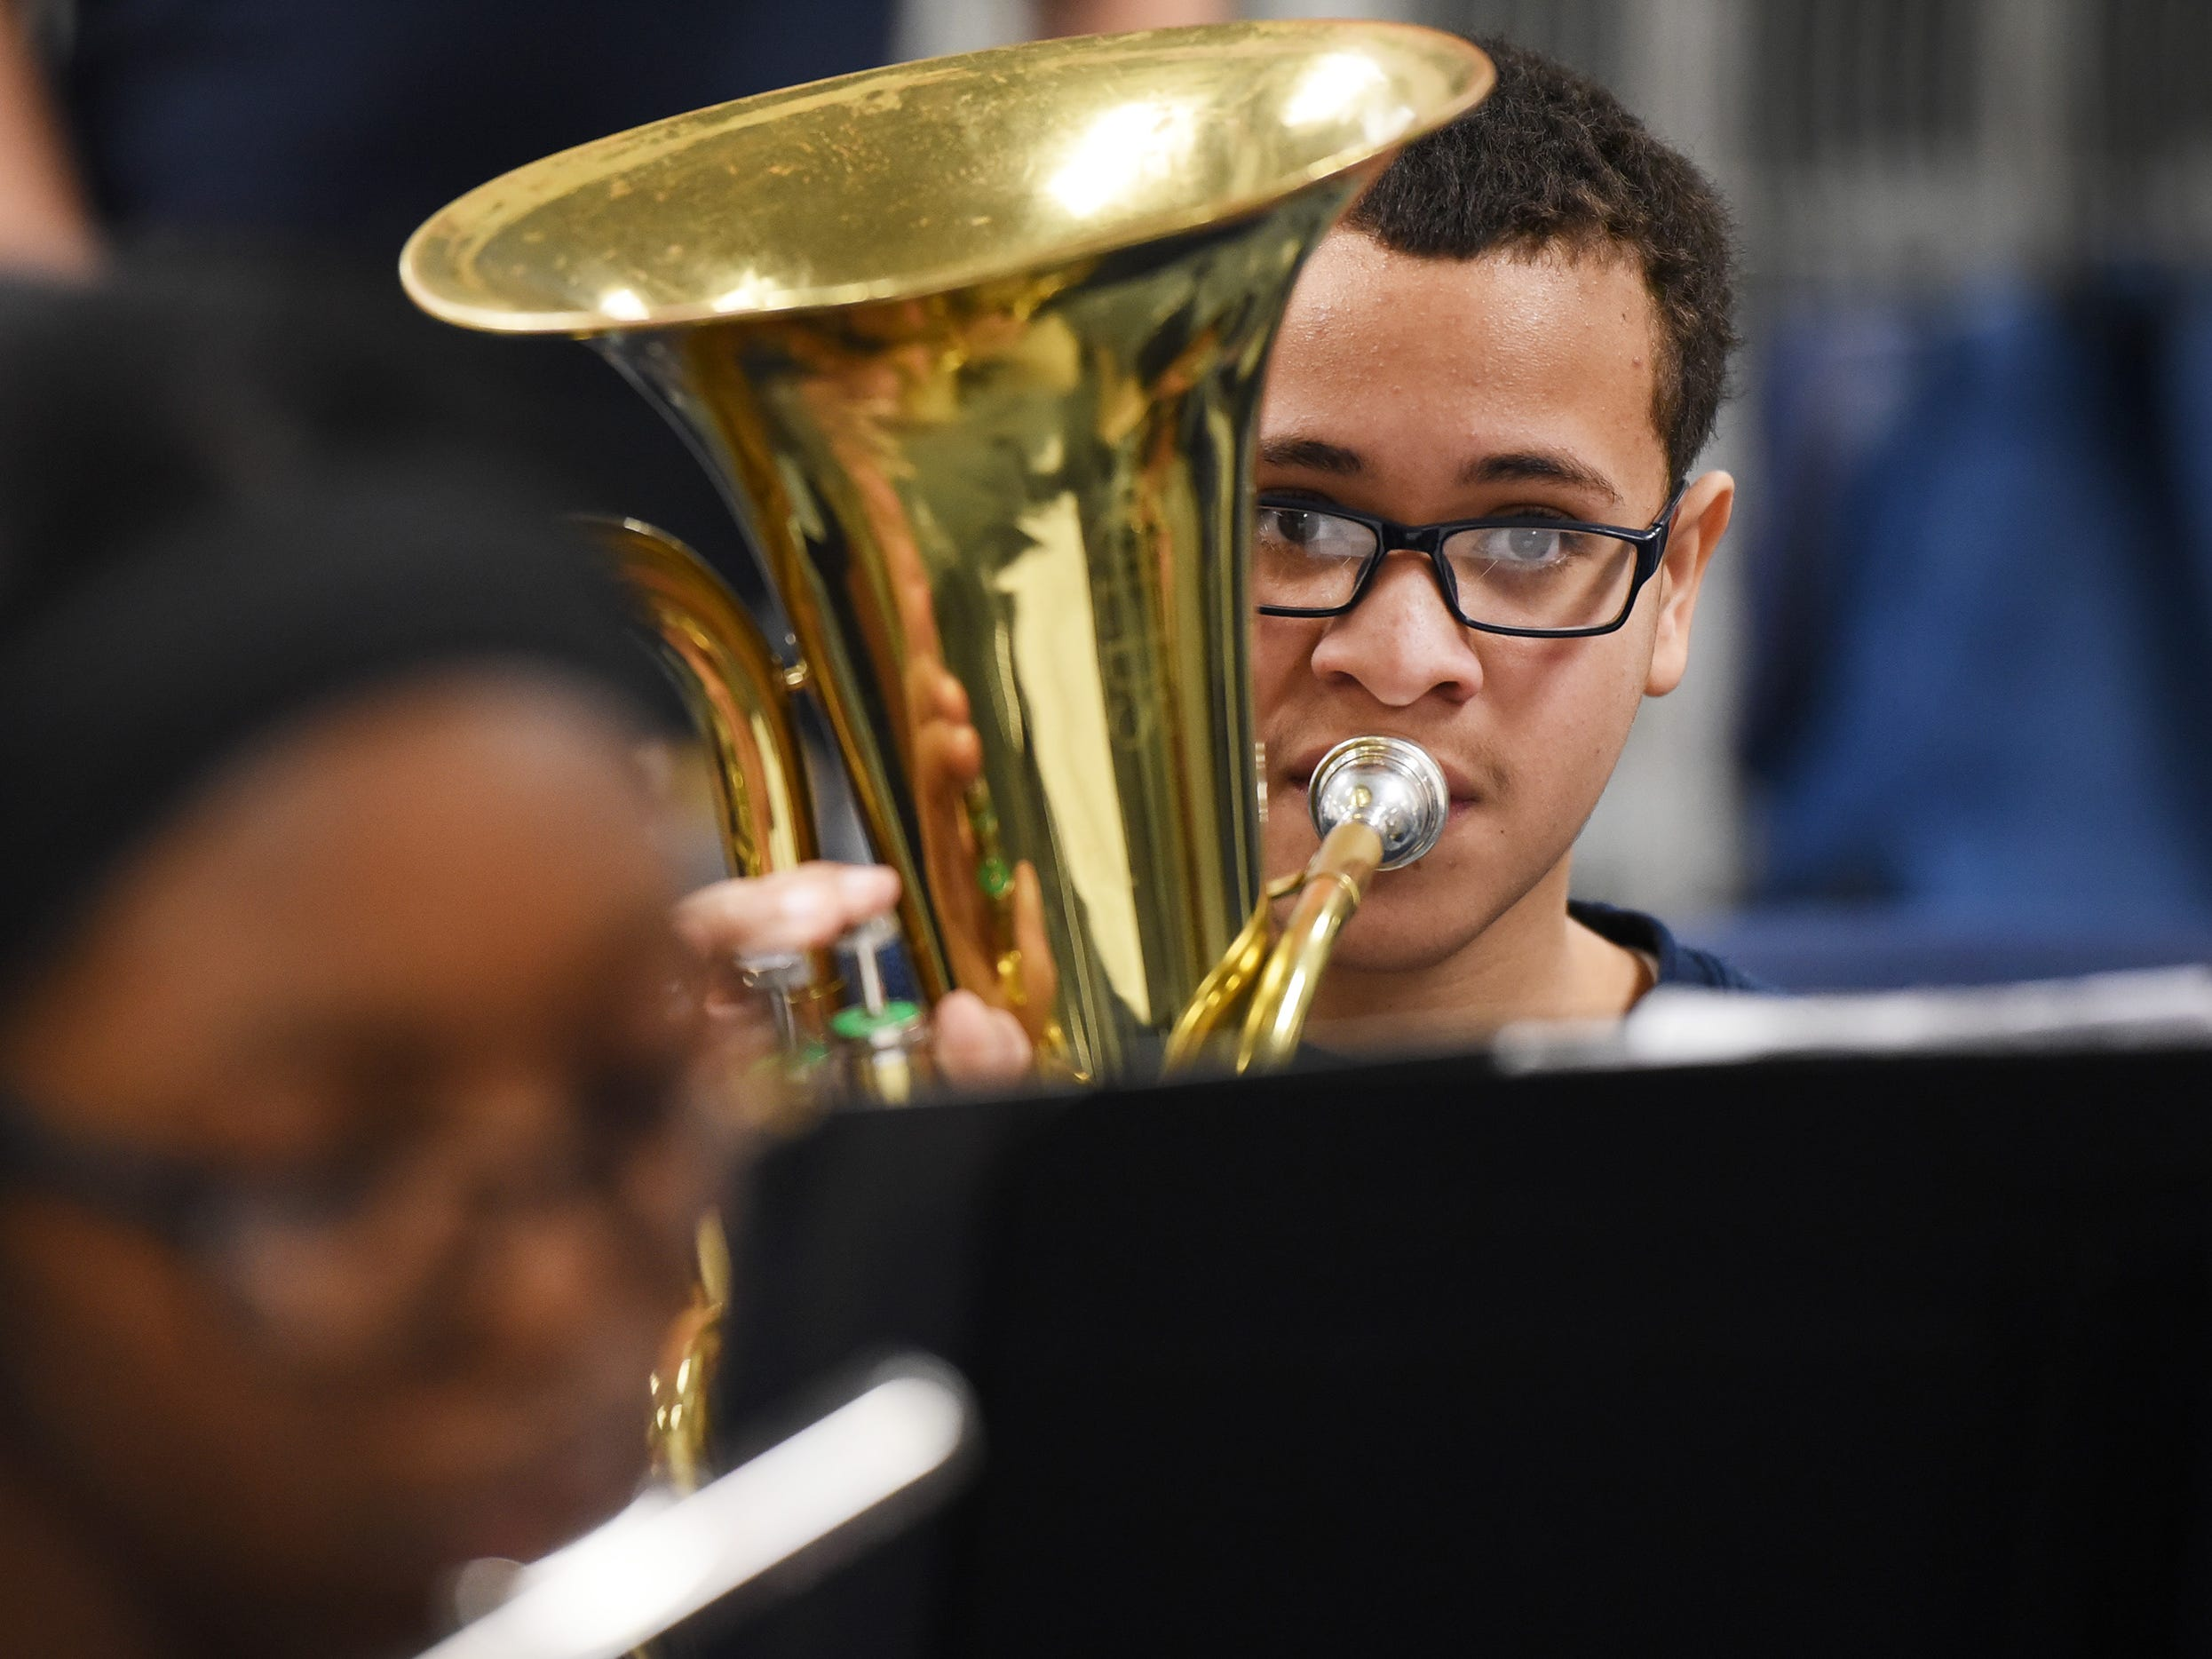 Eighth grader Pericles Gonzalez plays as he and his teammates practice led by the Band Director Nancy Horowitz during a music class at School #24 in Paterson on 01/09/19.